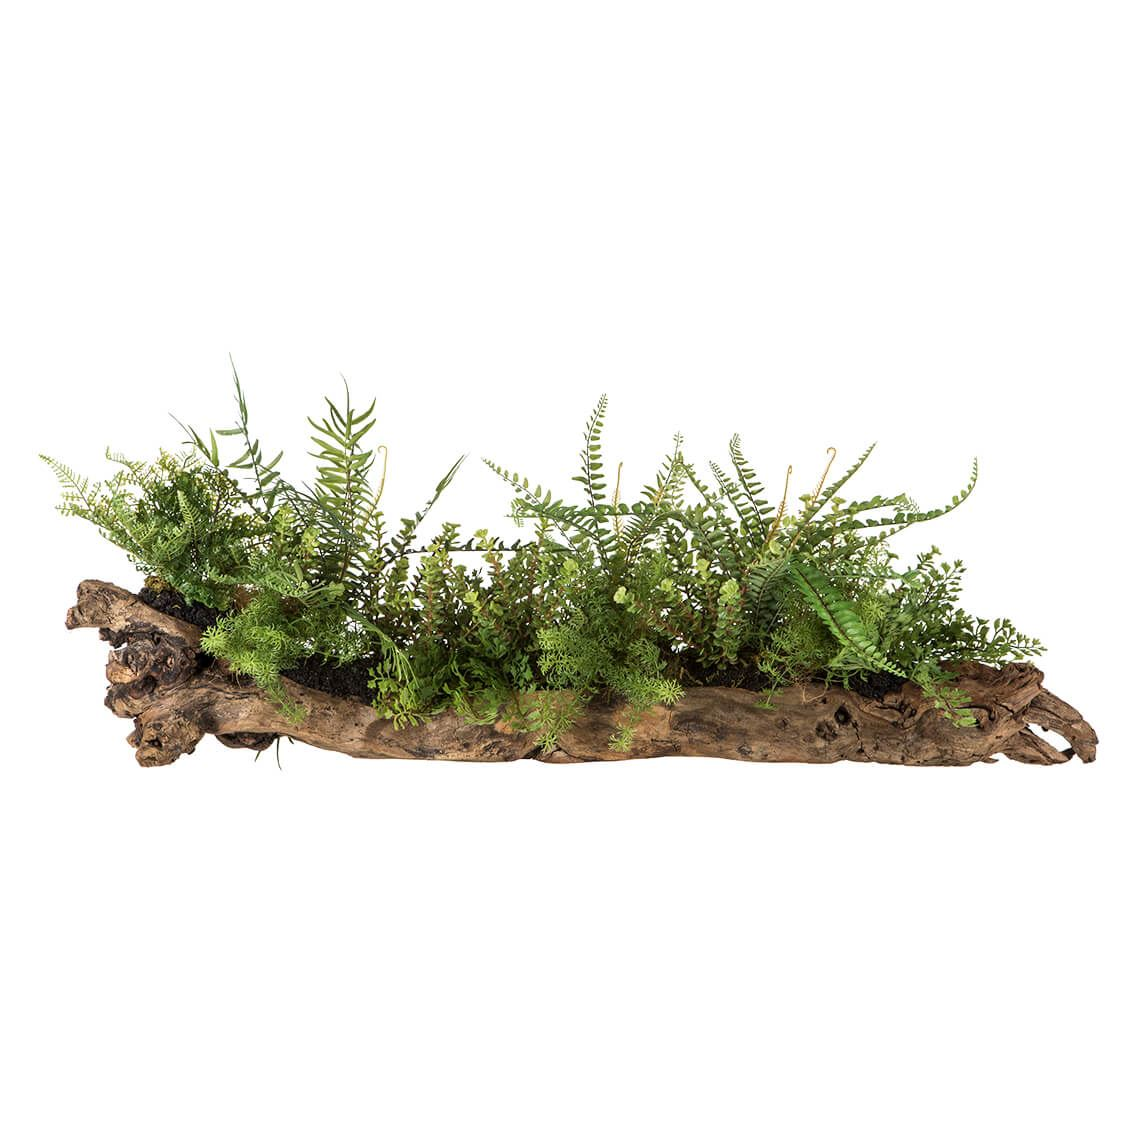 Fern Mix In Trunk Size W 22cm x D 4cm x H 21cm in Natural/Green Plastic/Wood Freedom by Freedom, a Plants for sale on Style Sourcebook